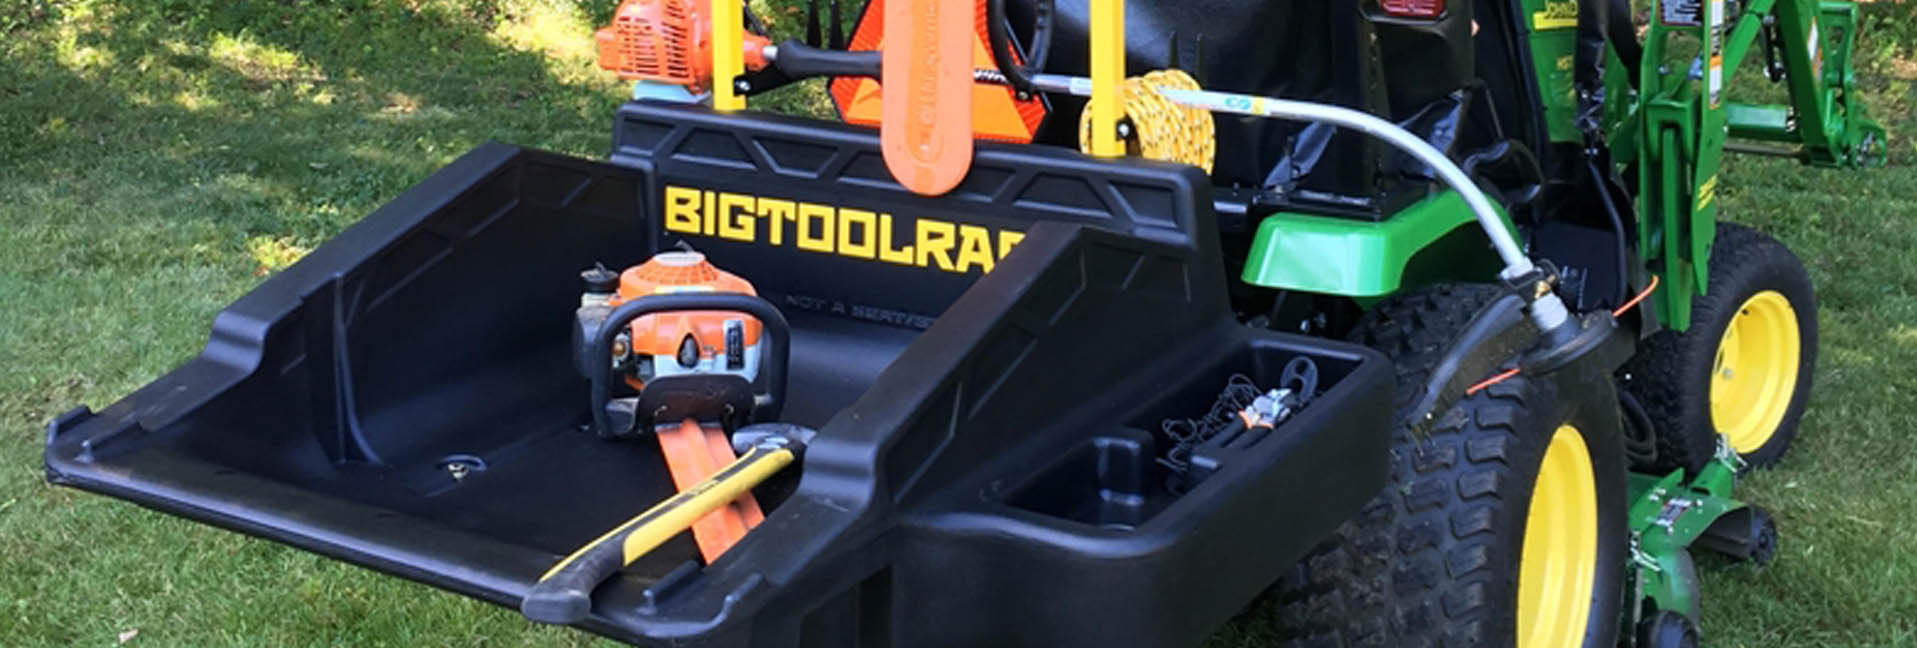 the swiss army knife of tractor attachments